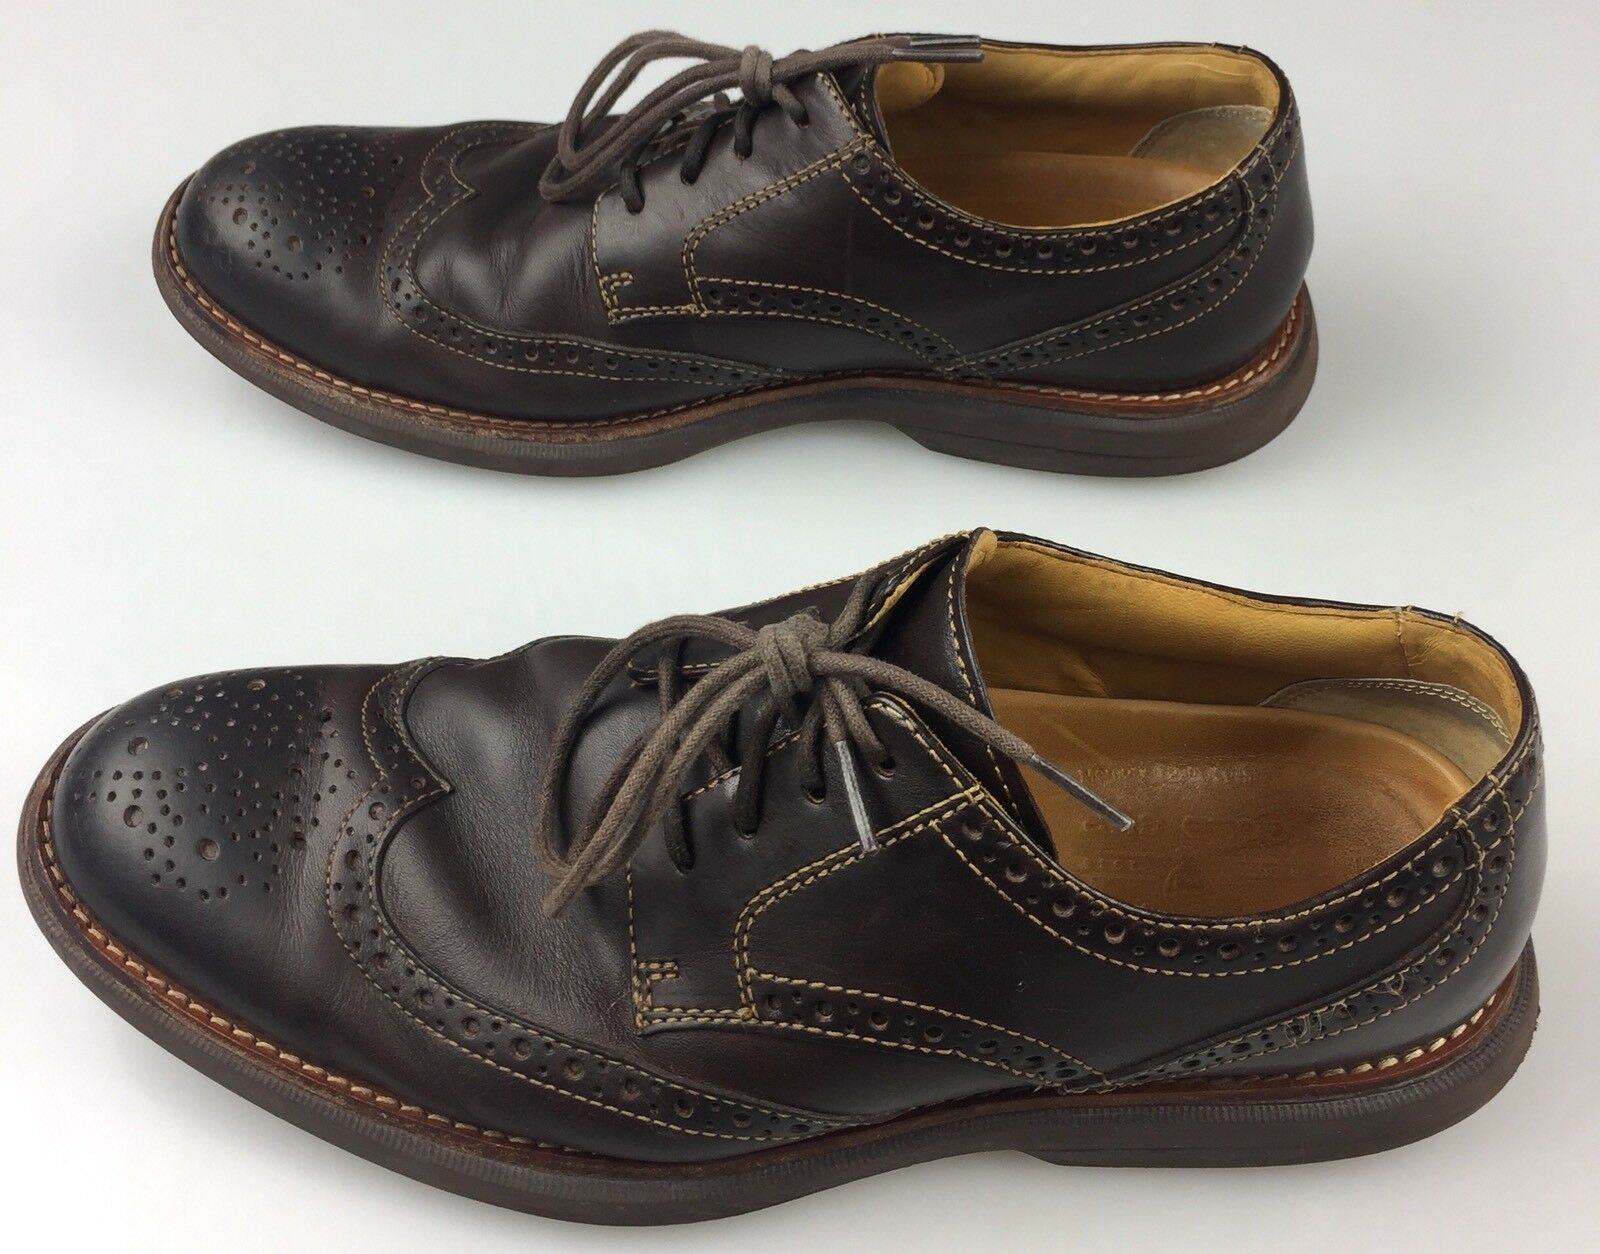 Uomo Dark 9M Sperry Gold Cup Bellingham Wingtip Oxford Brogue Dark Uomo marrone Pelle Shoe 1ac733